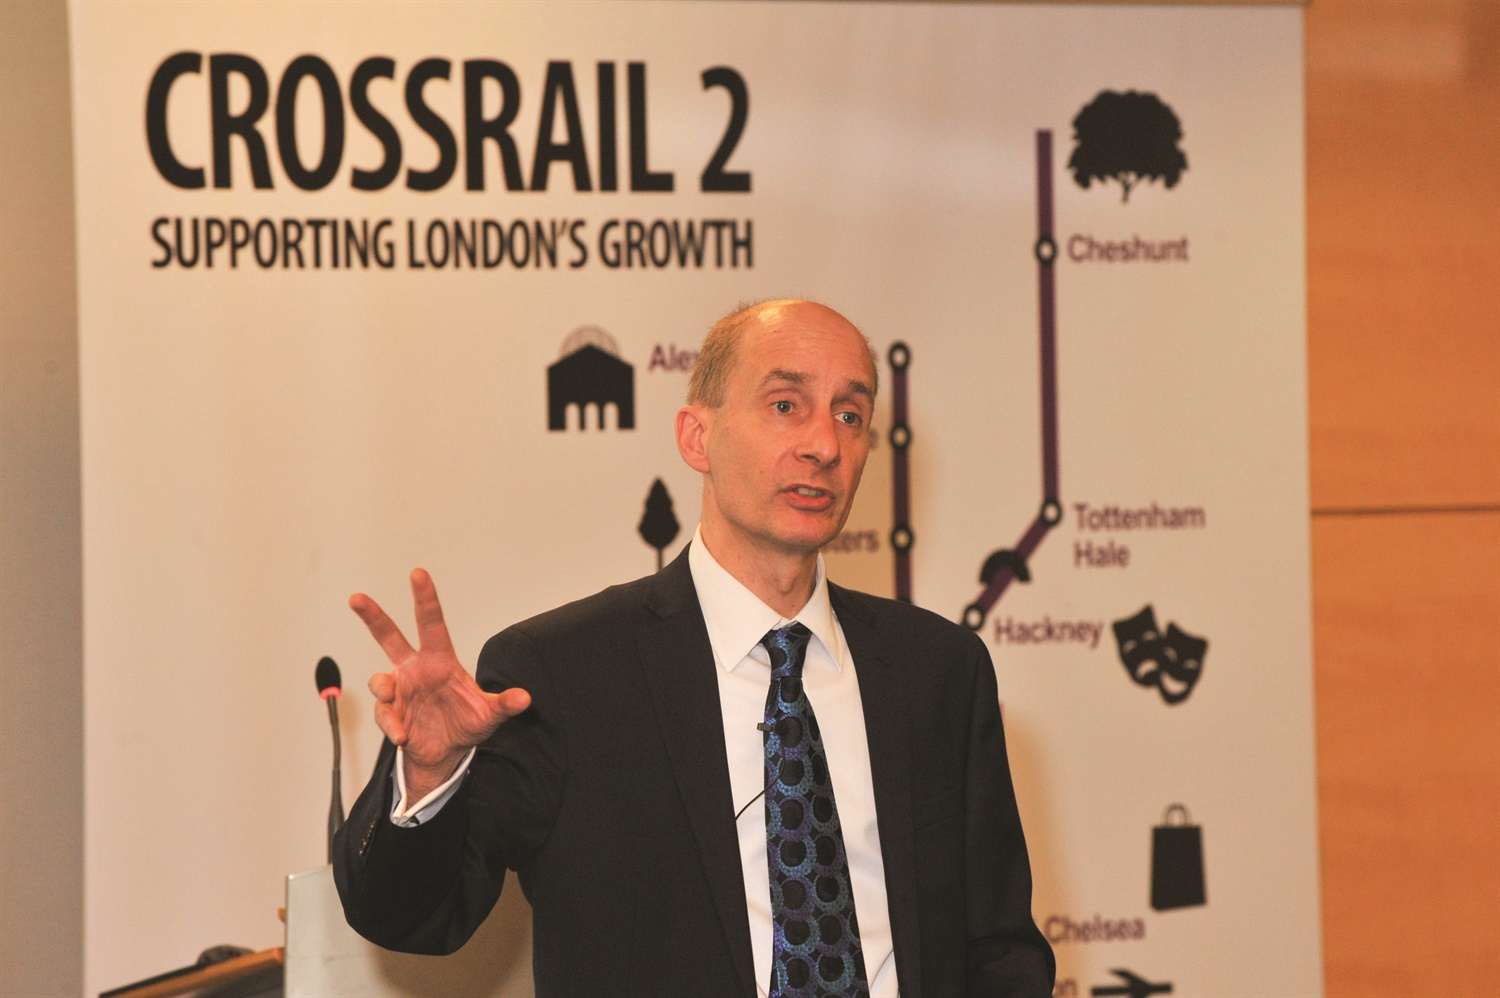 HS2 board member Lord Adonis to spearhead independent rail infrastructure commission